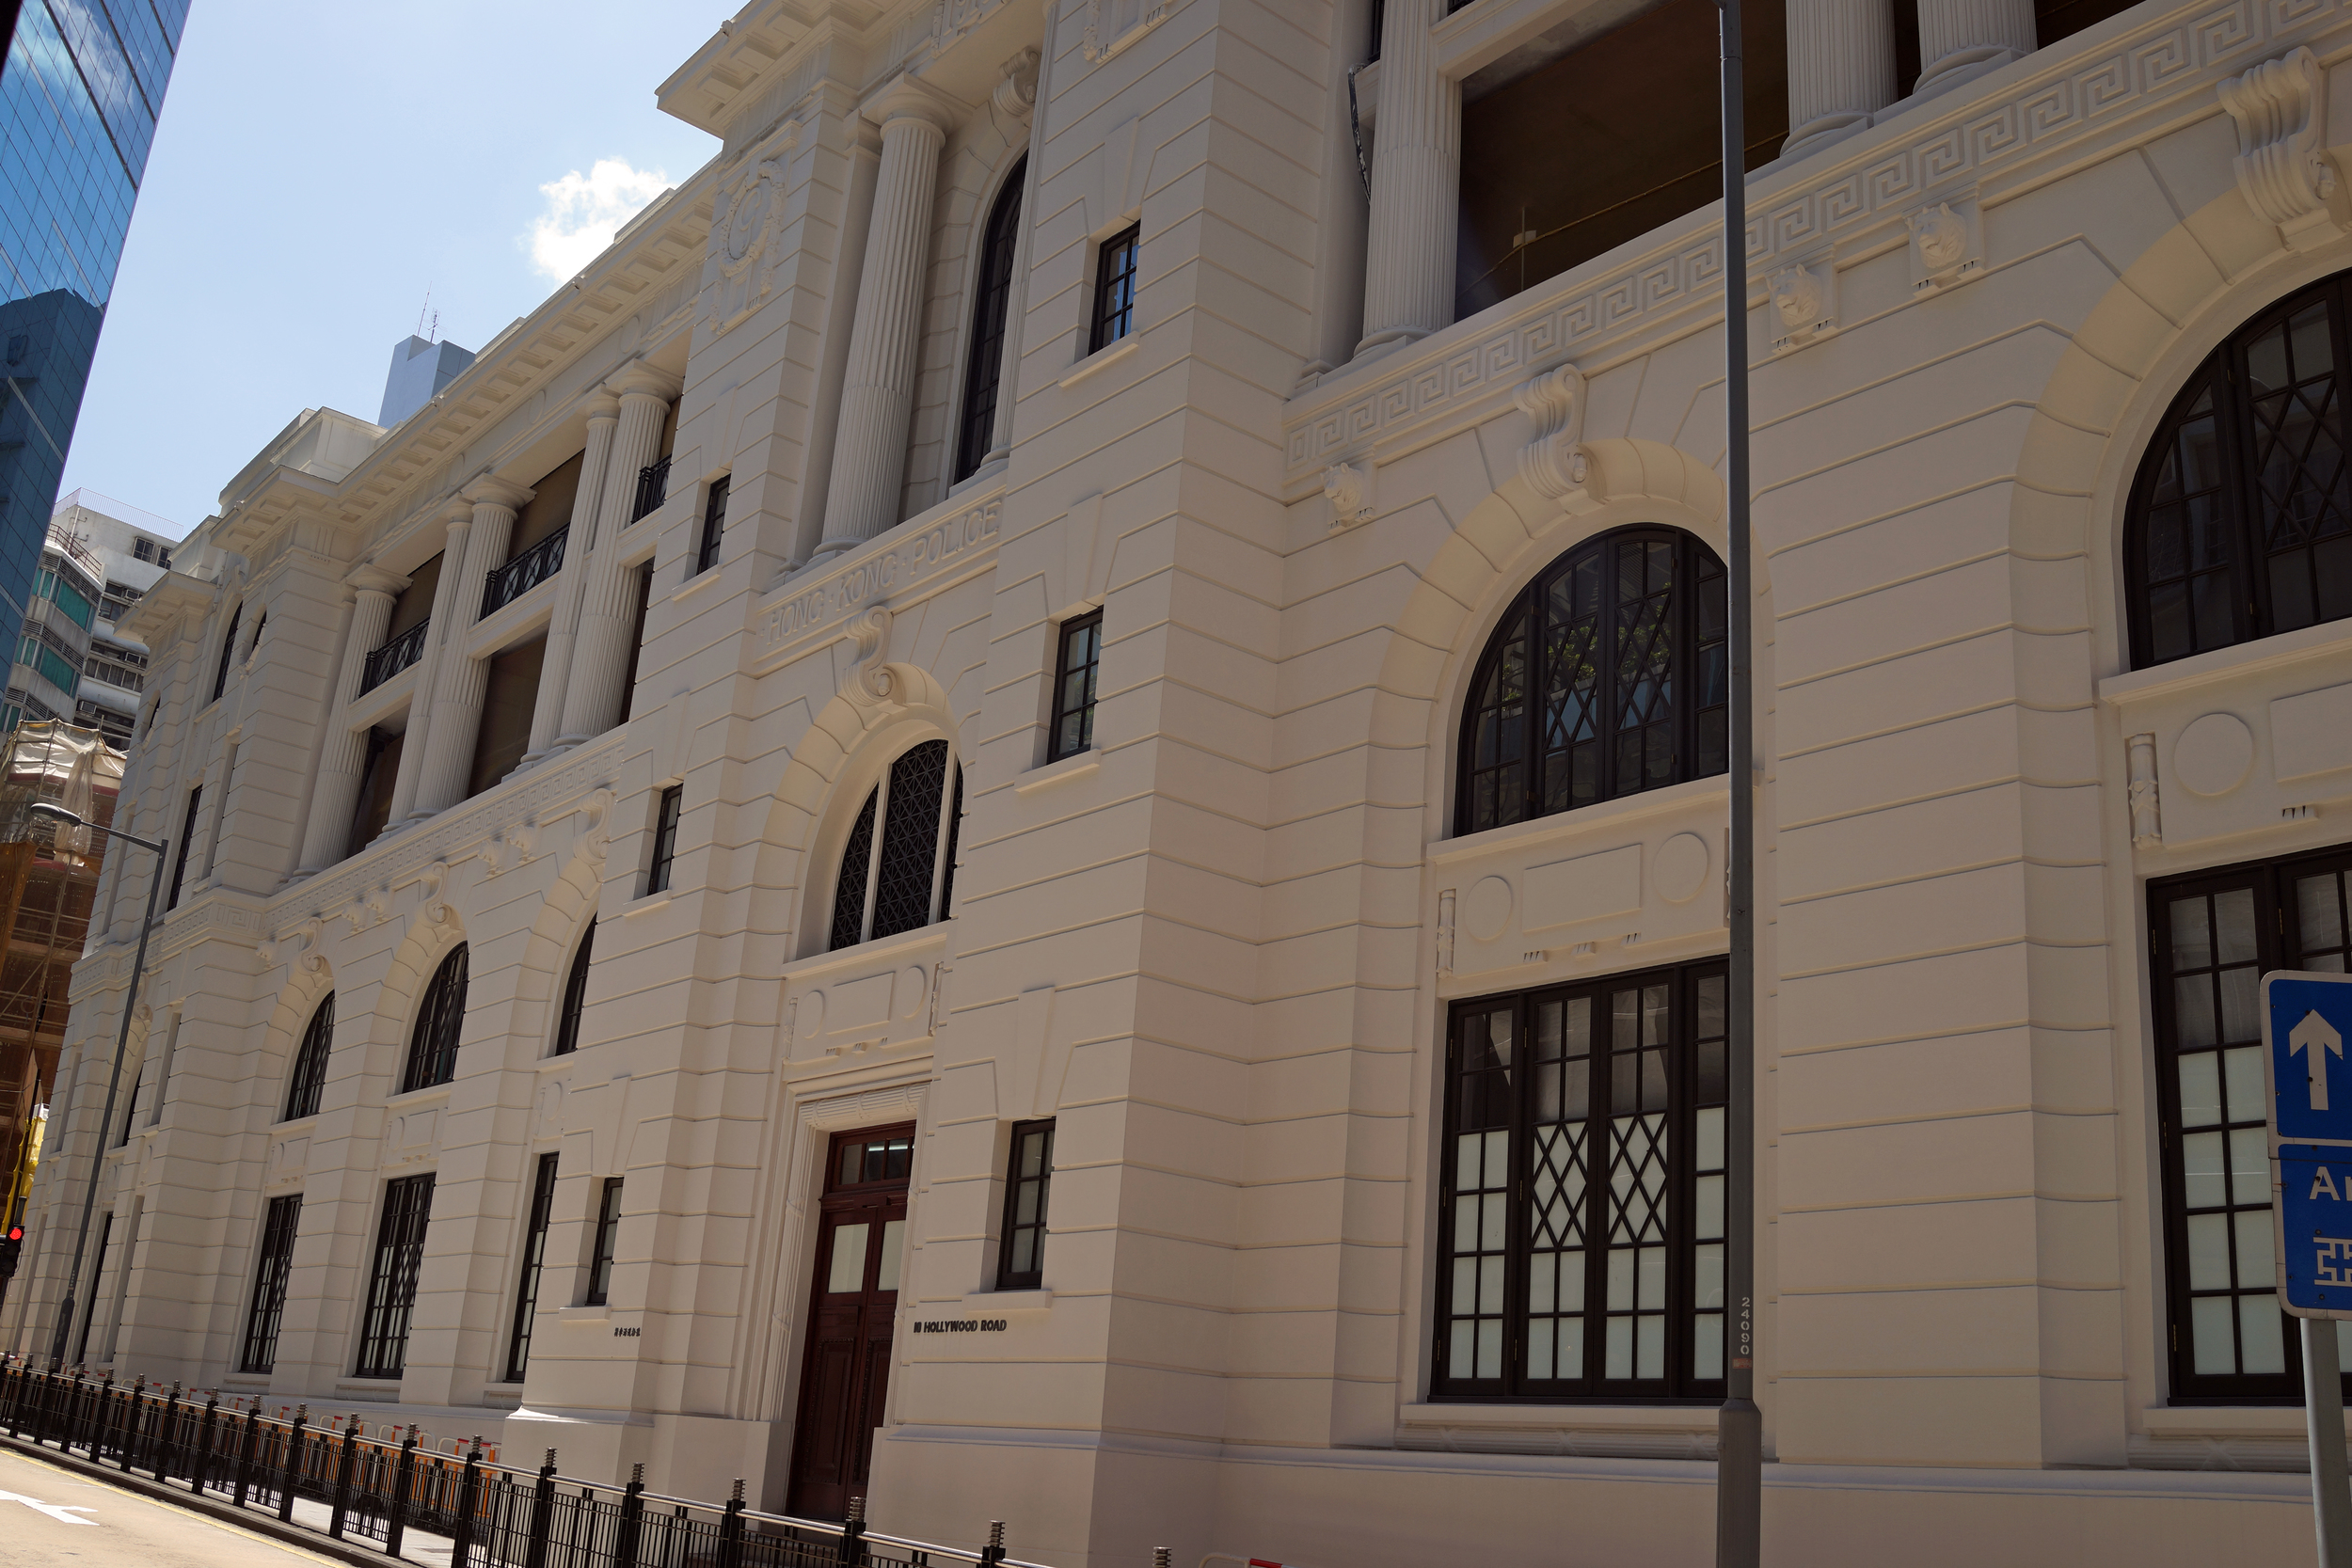 This is the old Central Police Station on Hollywood Road near SOHO - opened in 1919 it is undergoing a major restoration and it looks like they have done a magnificent job - it is going to be an arts hub....